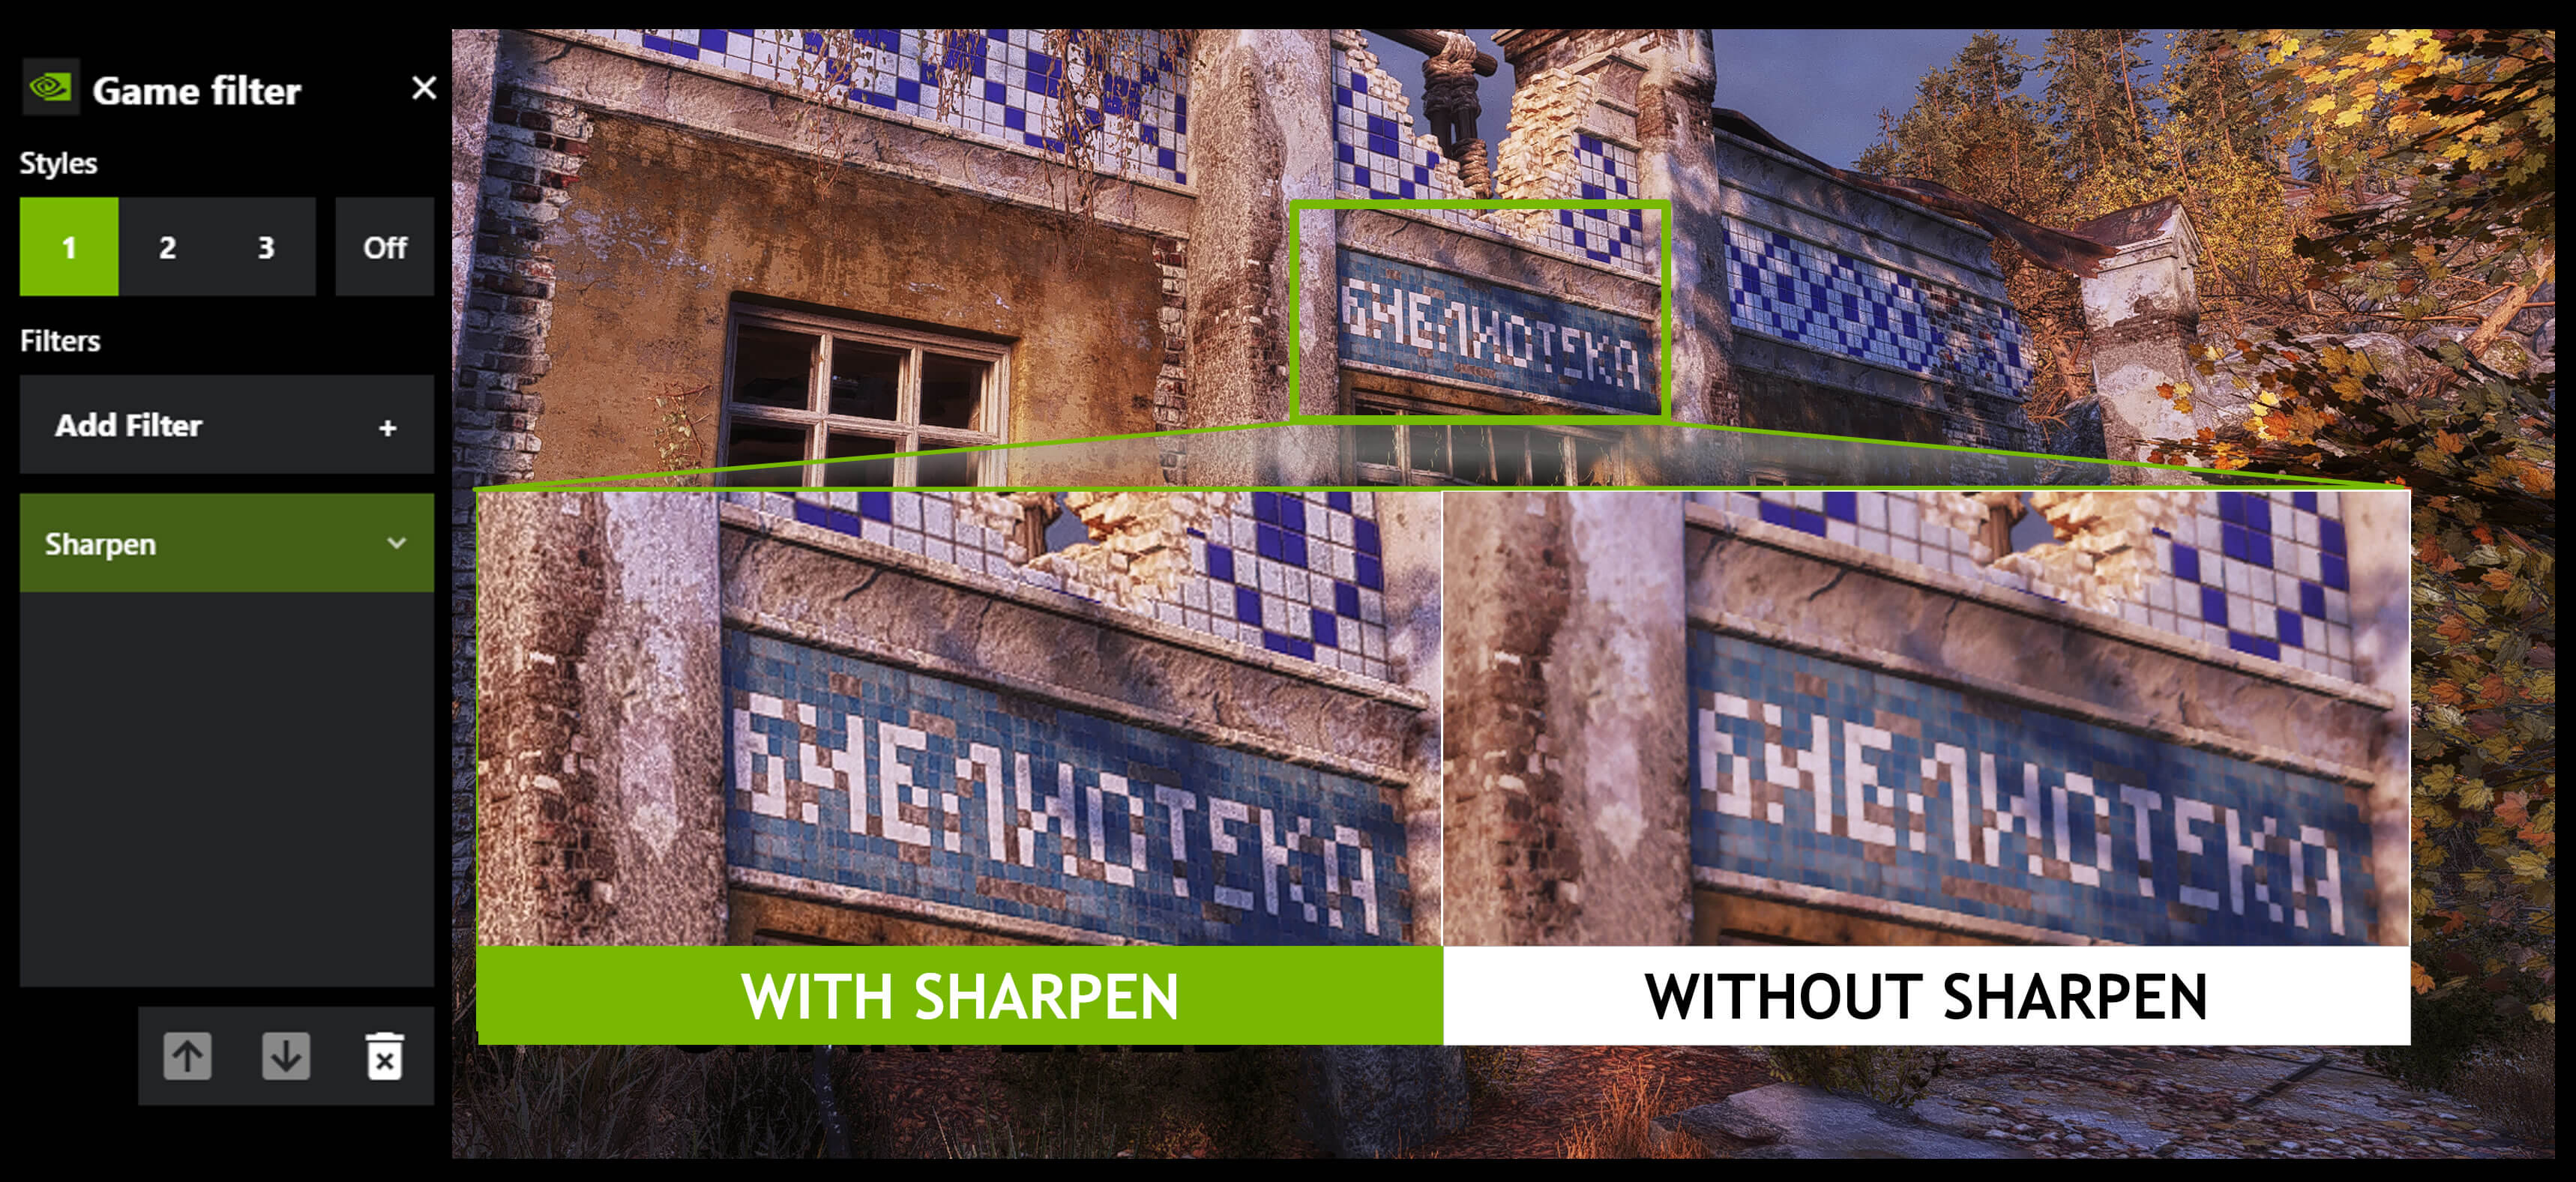 DLSS Is Dead: New Nvidia Freestyle Sharpening Tested Photo